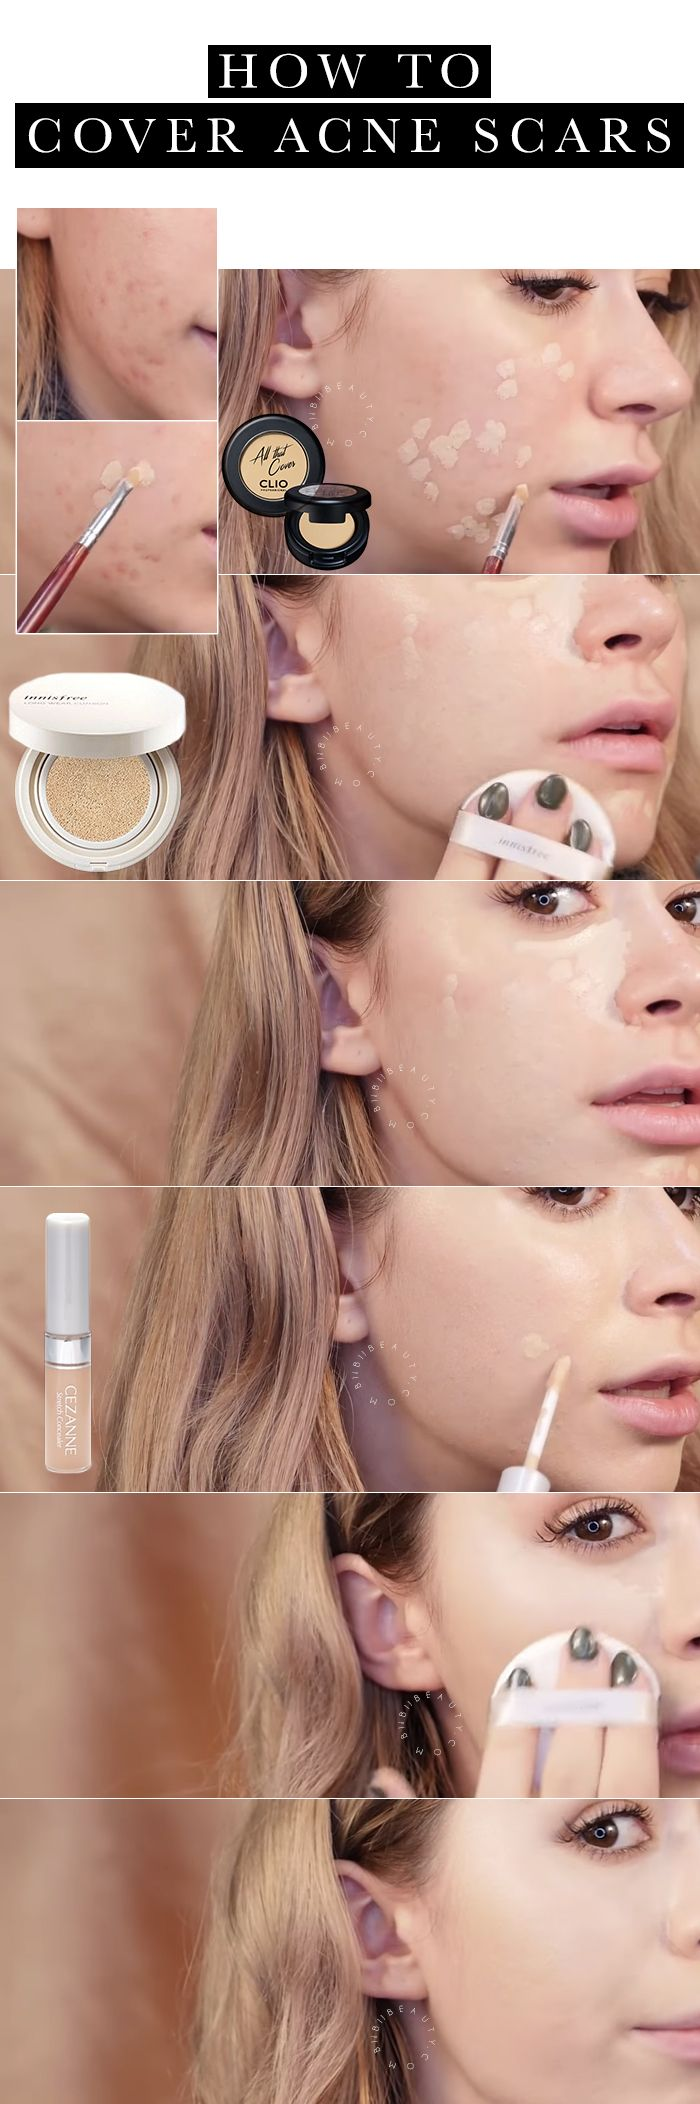 HOW TO COVER ACNE SCARS biibiibeauty http://www.biibiibeauty.com/how-to-cover-acne-scars/